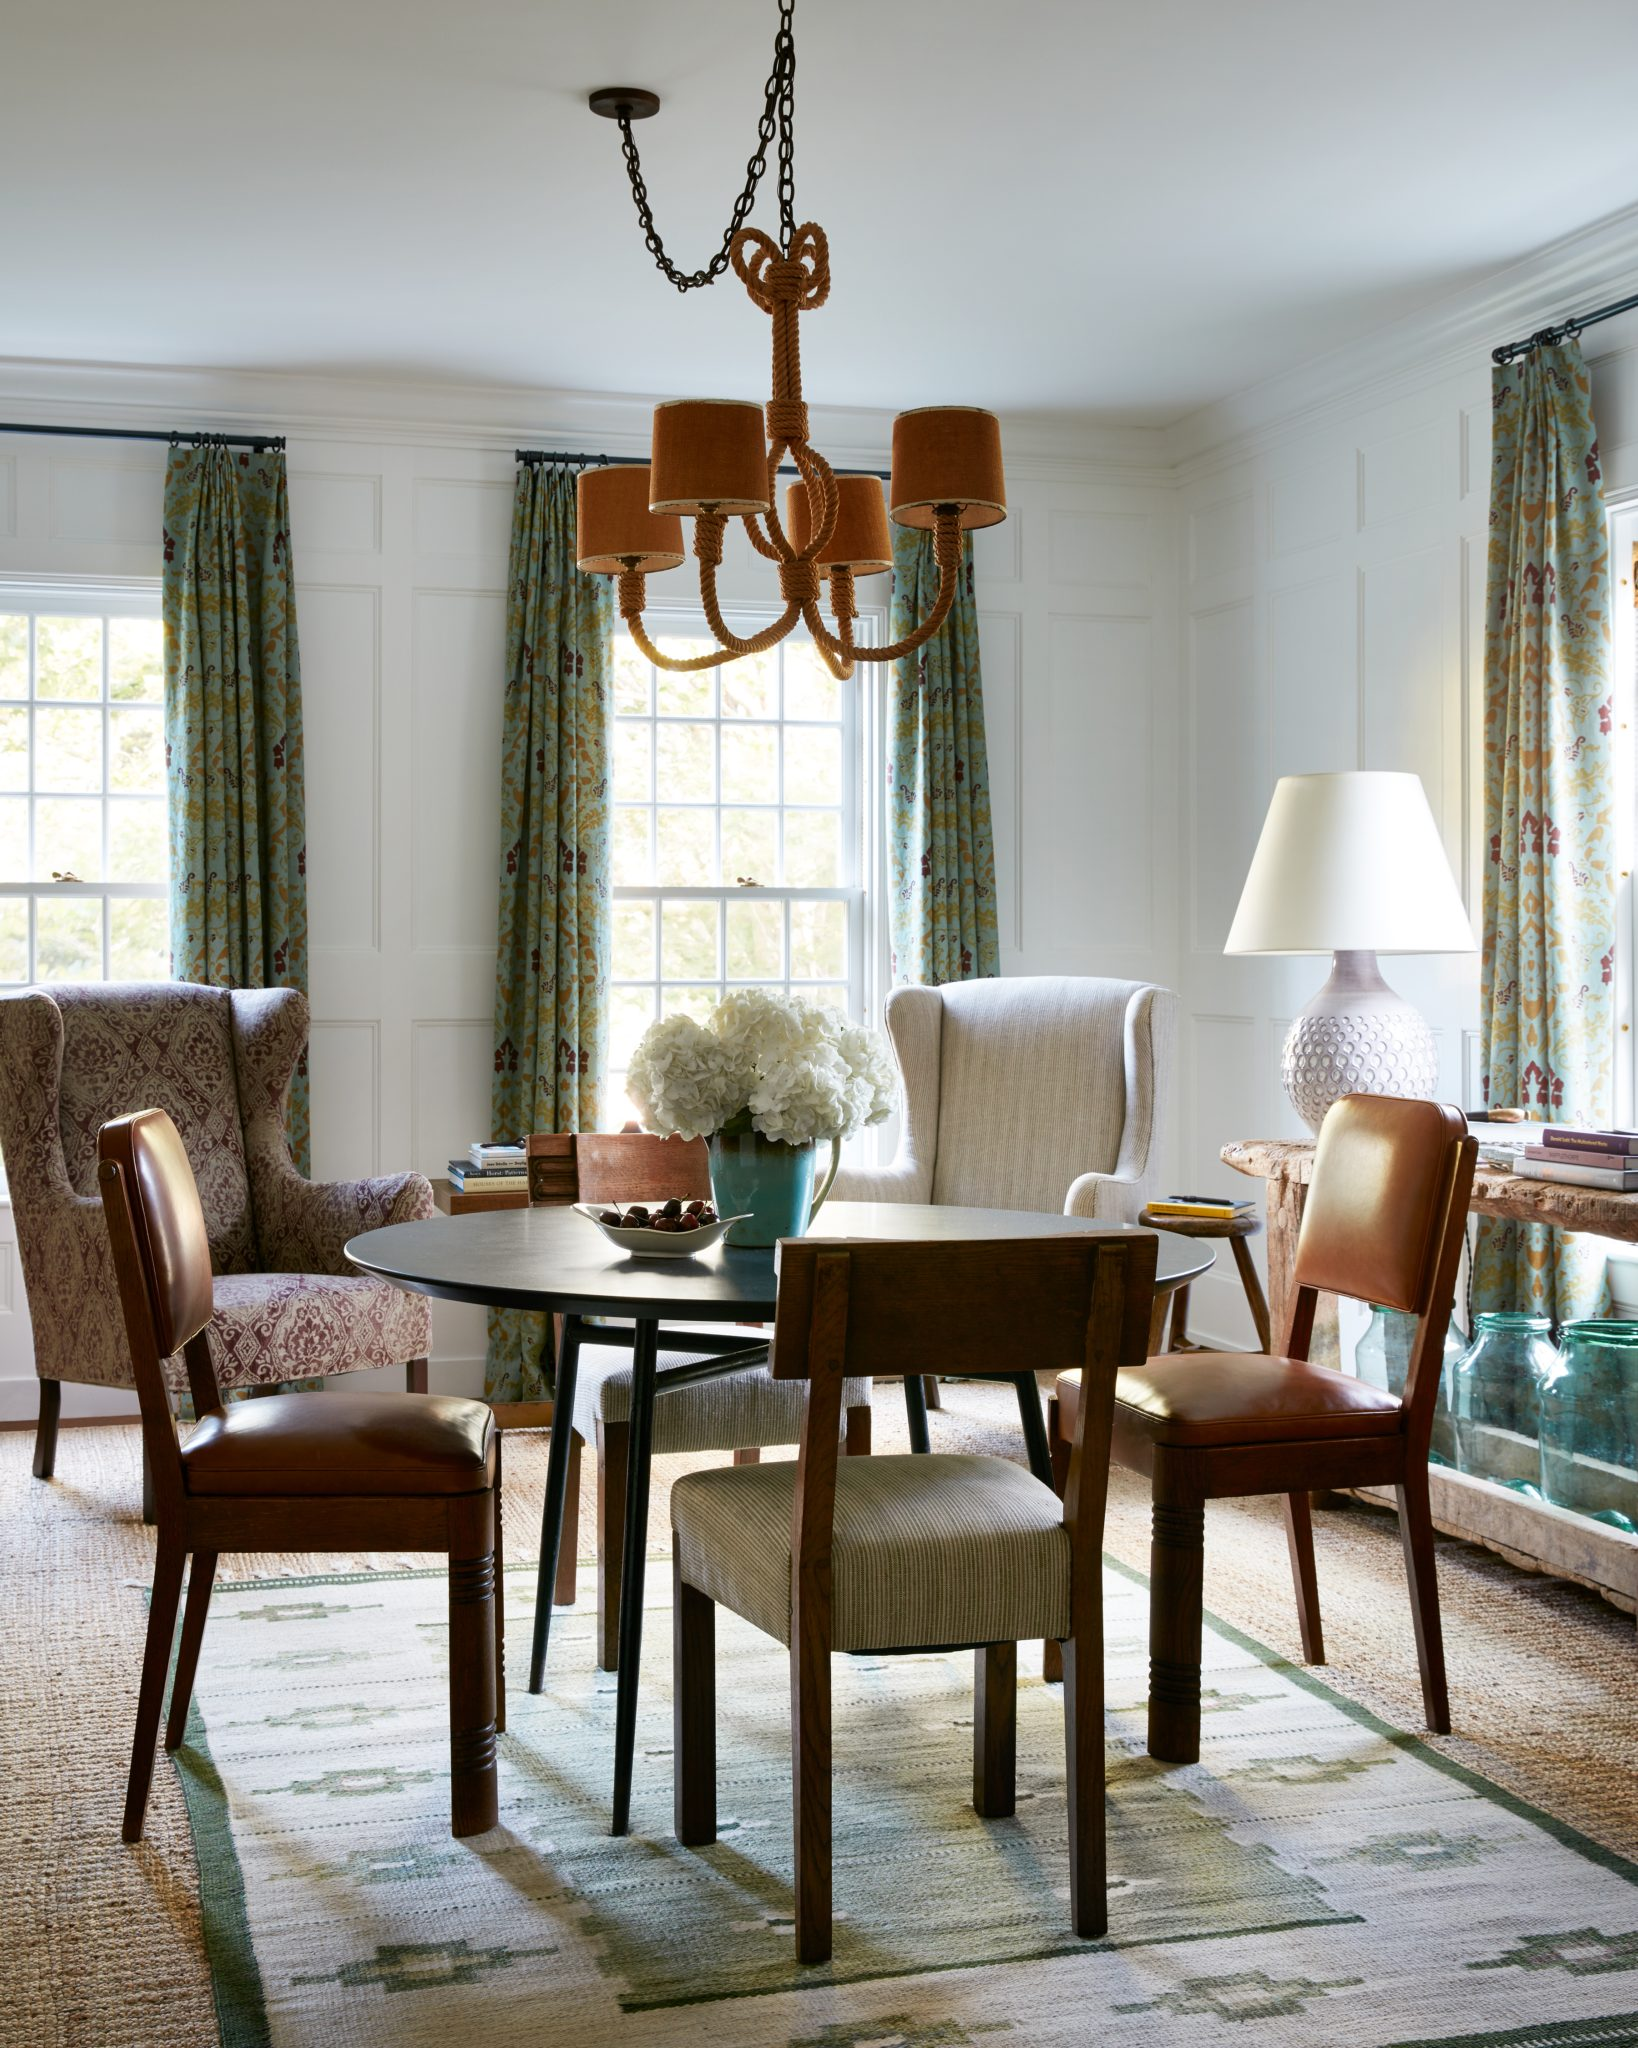 In a late-19th-century Hamptons farmhouse rebuilt by the designer working with Peter Pennoyer Architects, English and American antiques mix with midcentury designs of various nationalities, traditional fabrics, and eccentric items from far-flung locales. The dining room ensemble includes Charles Dudouyt chairs, an Audoux-Minet rope chandelier, and Børge Mogensen–style wingback chairs.